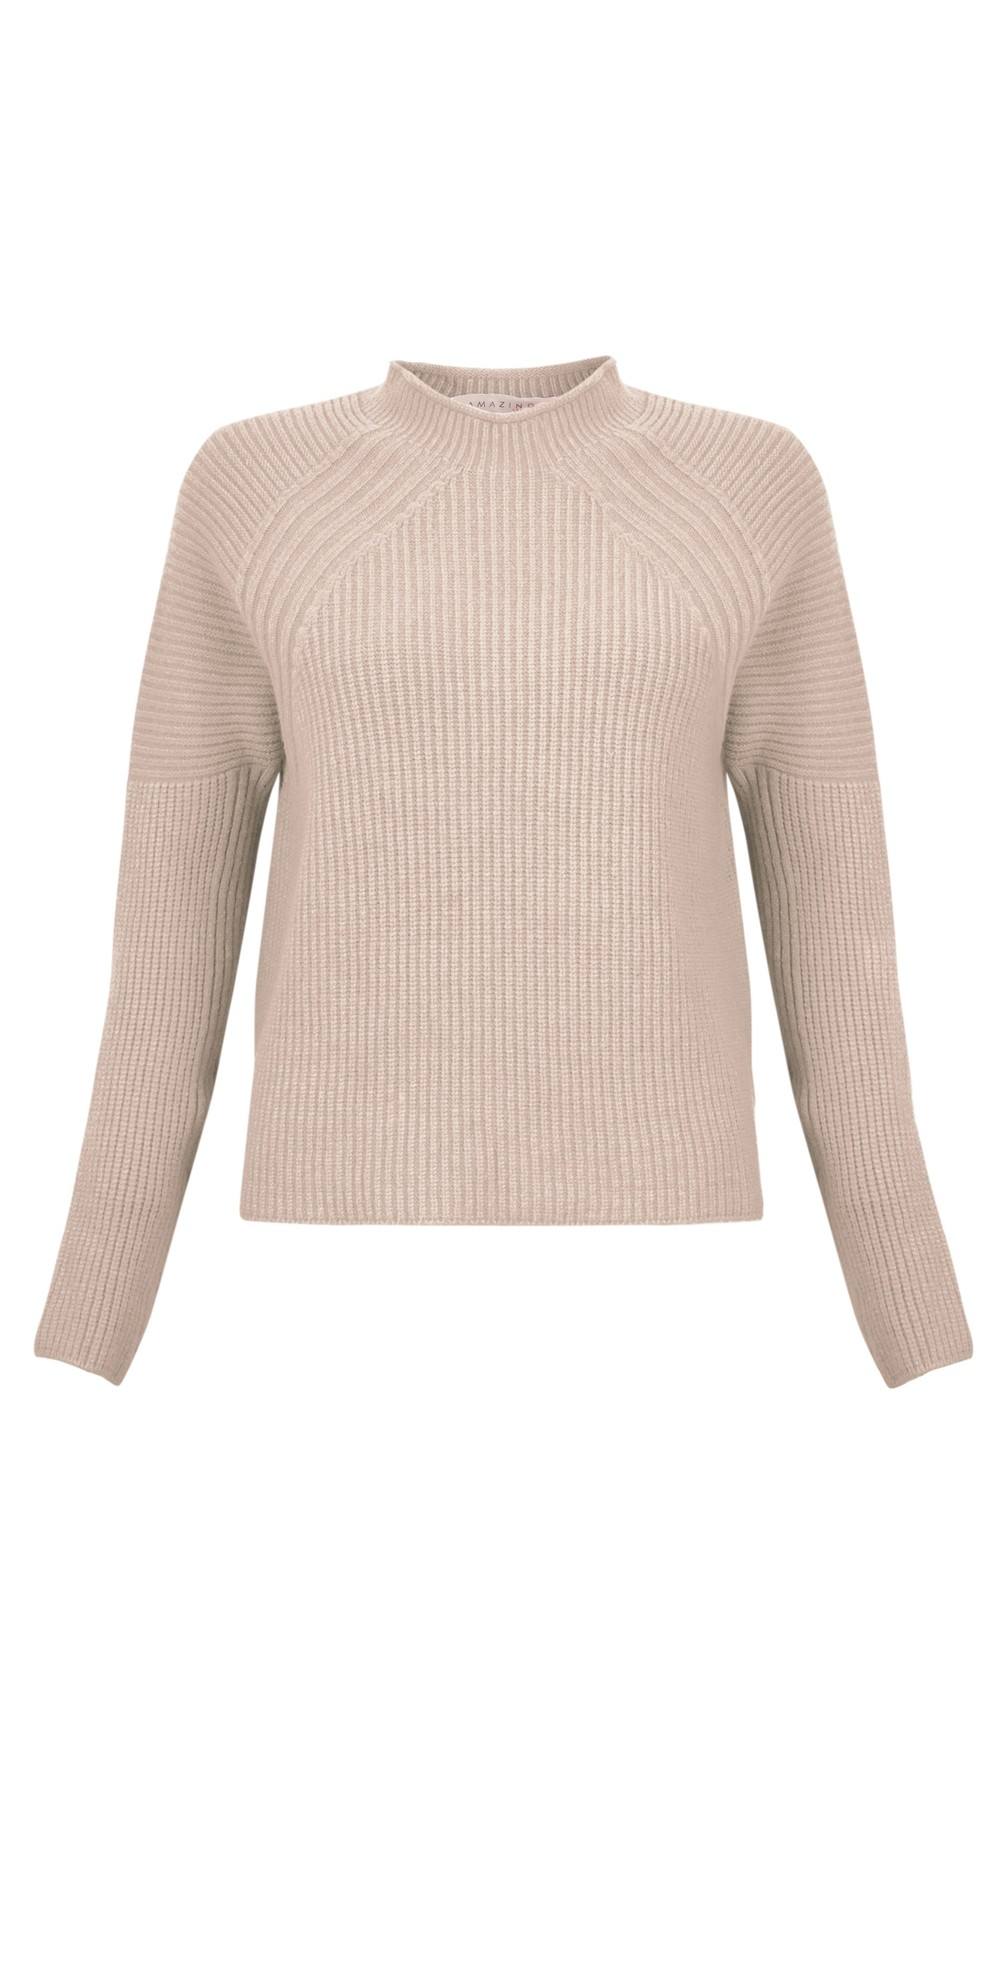 Fran Roll Neck Contrast Rib Knit main image